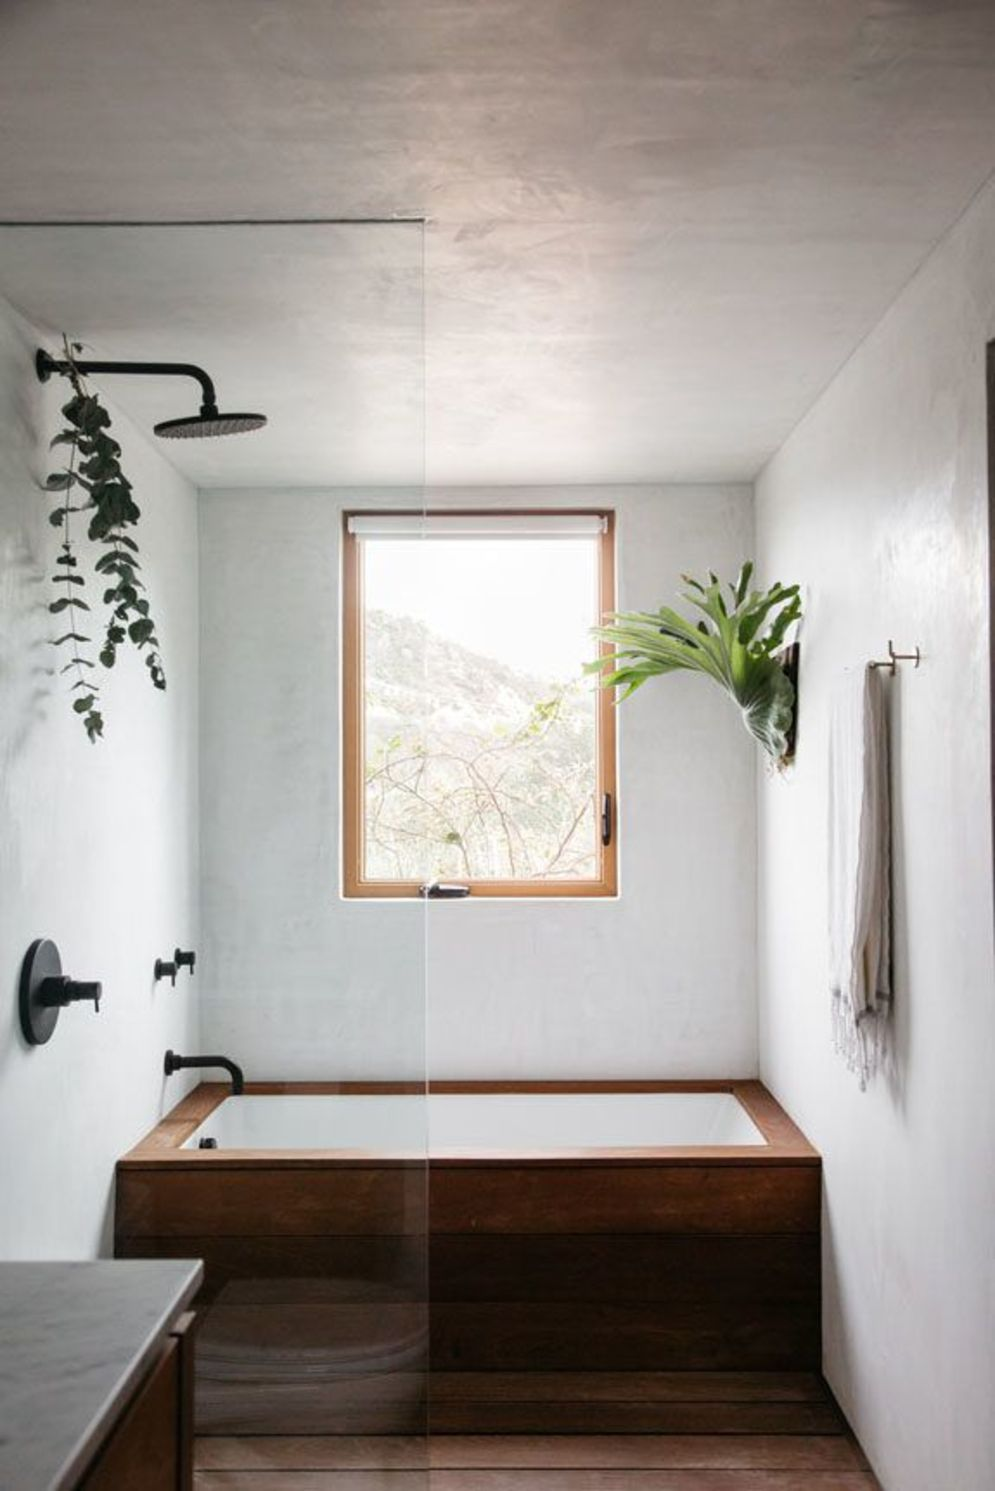 Most savvy bathroom designs with elegant wood finish to give more natural feel Image 2